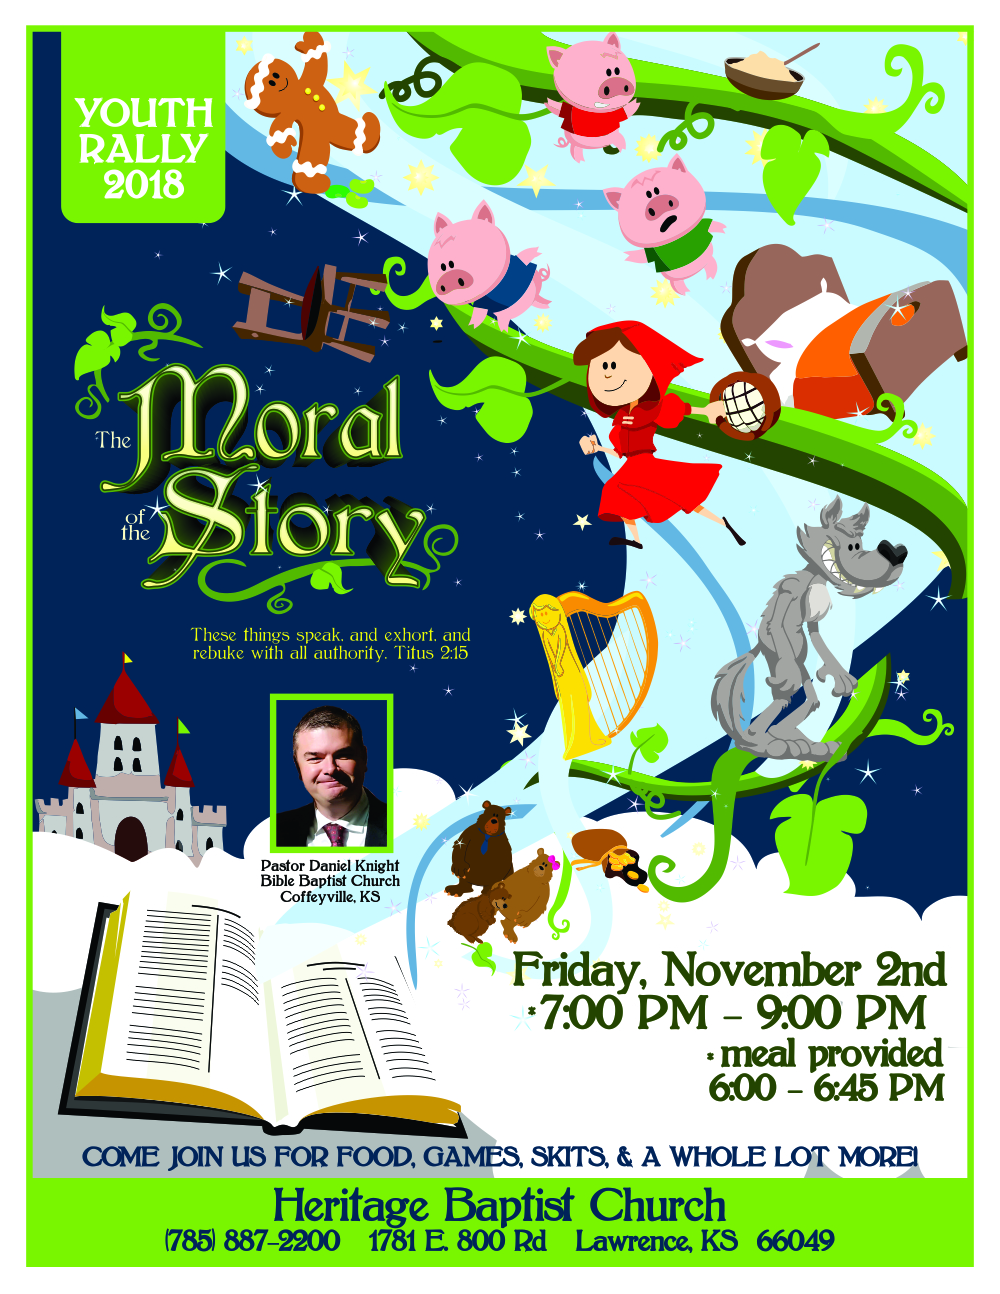 Youth Rally Flyer 2018 - The Moral of the Story